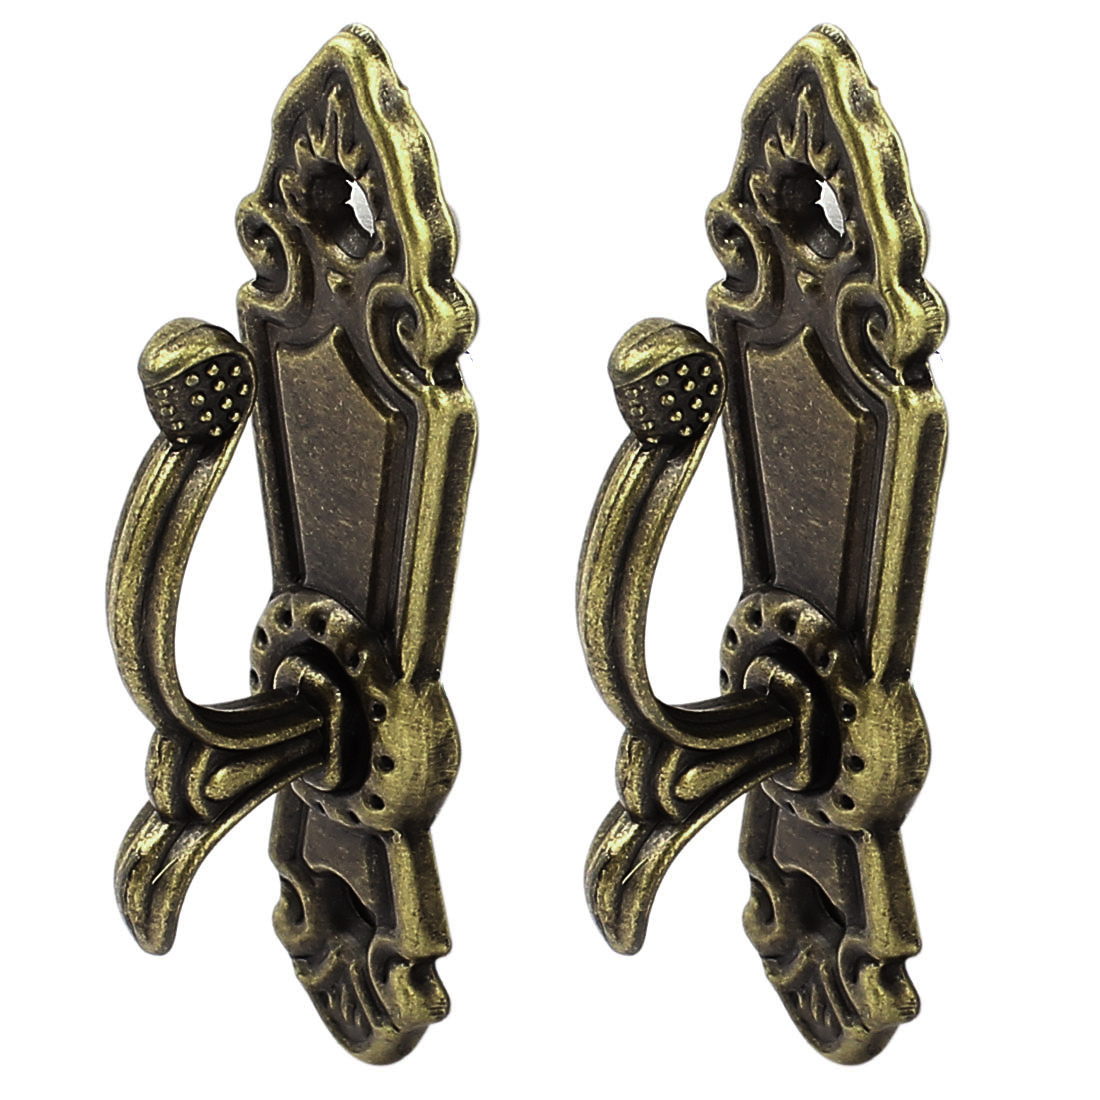 Screw Mount Curtain Tassel Tie Back Tieback Mini Wall Hooks Bronze Tone 2PCS